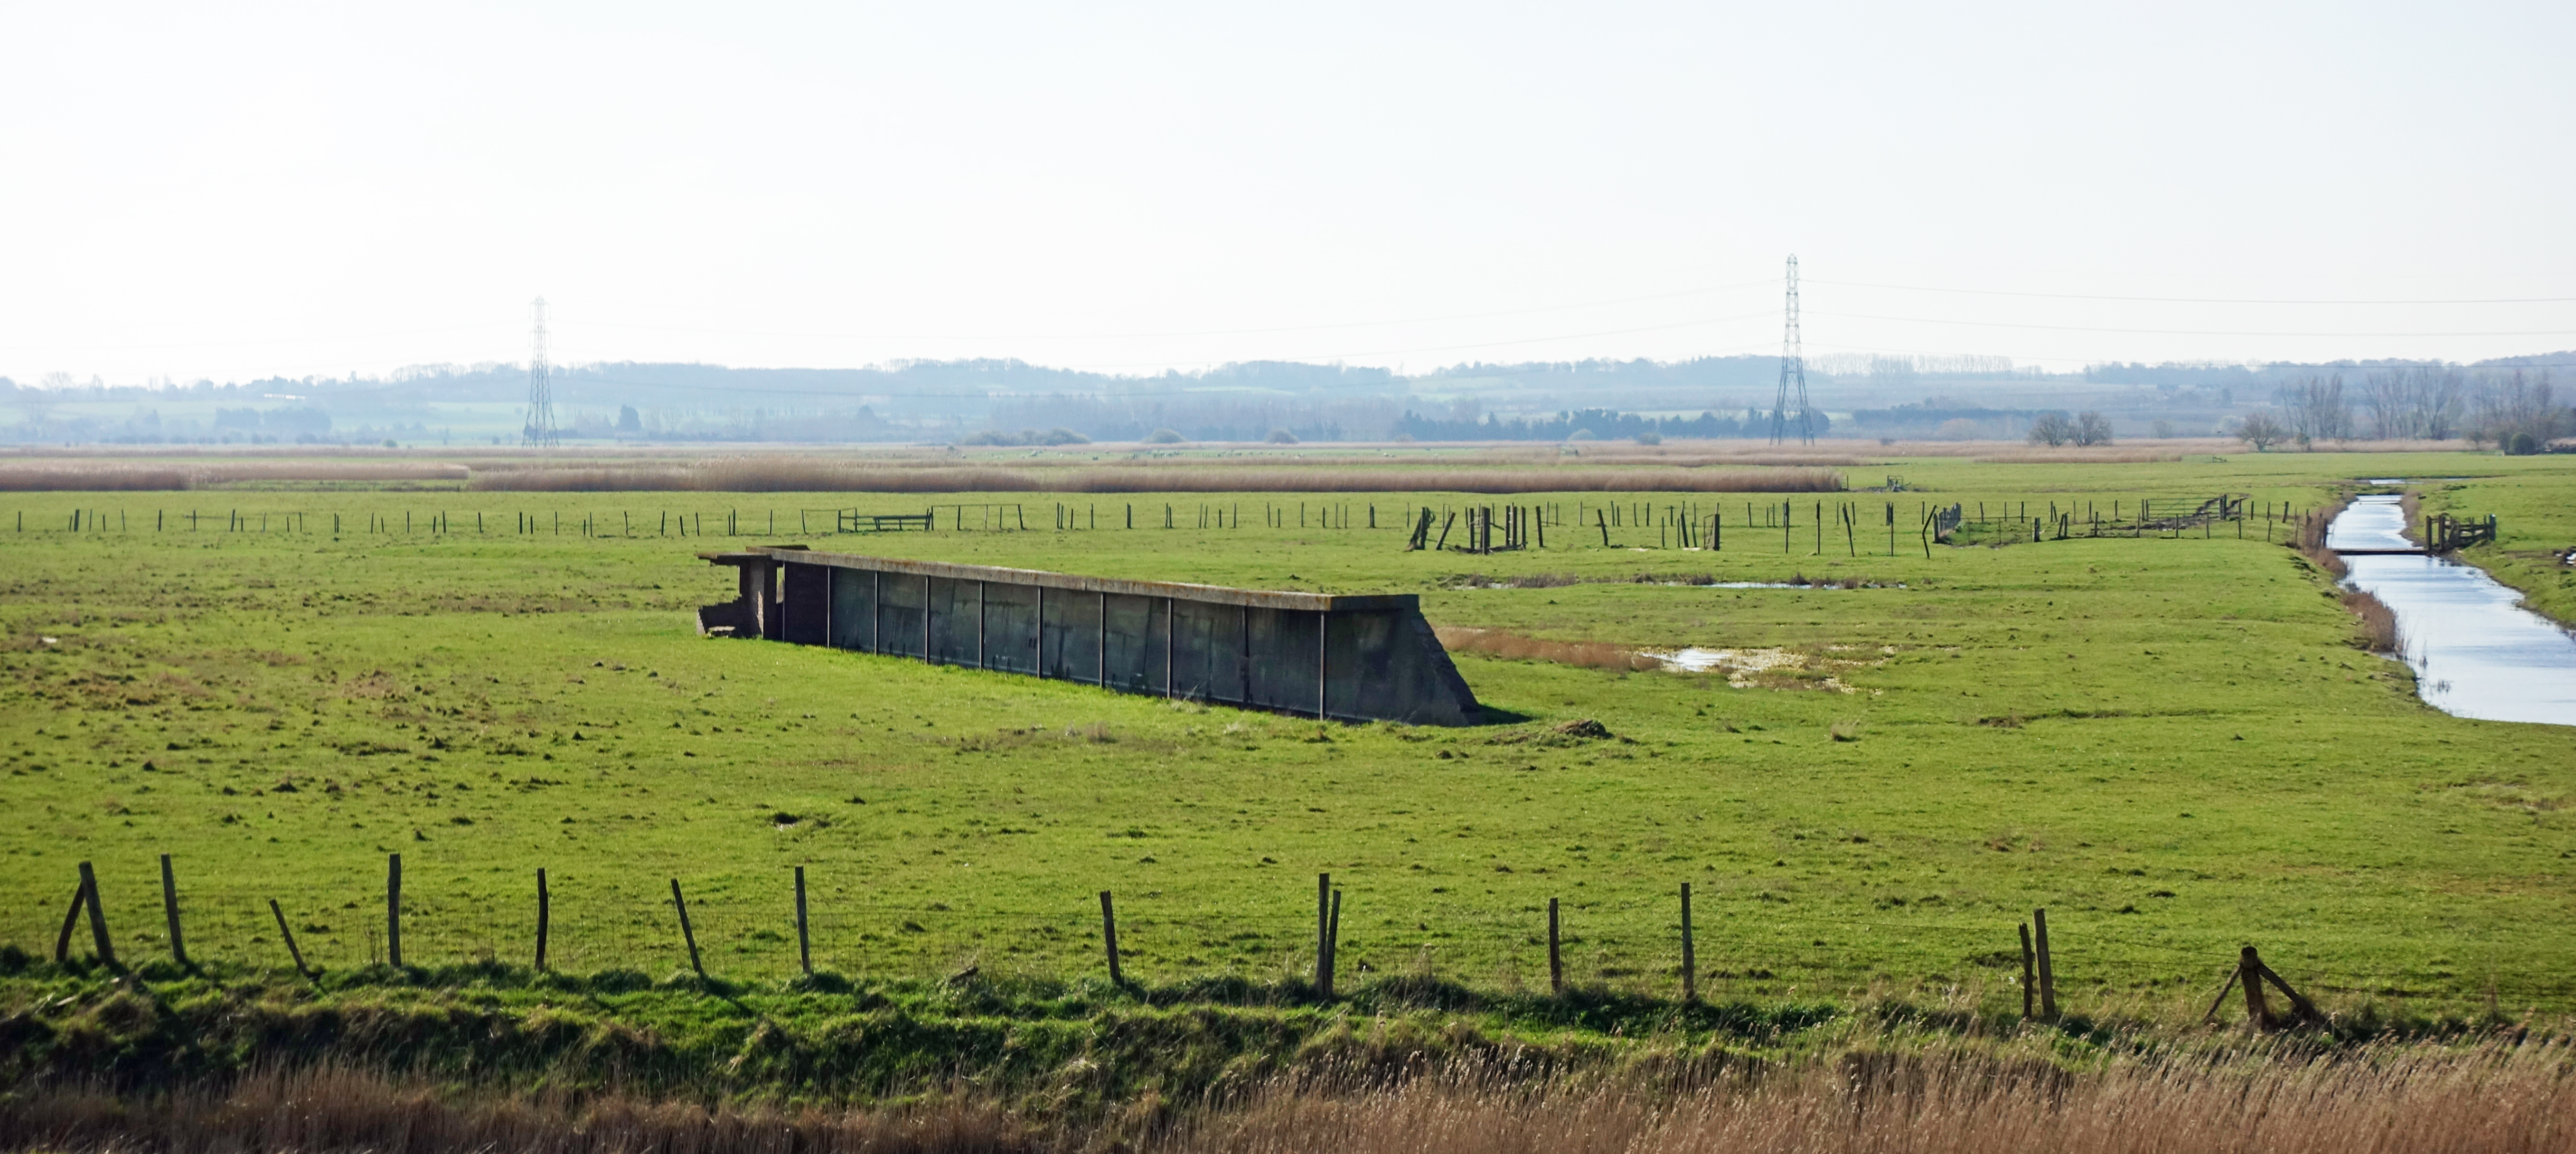 Two wartime rifle ranges are passed on this walk. The crumbling concrete butts are simply part of the grazing marsh landscape today